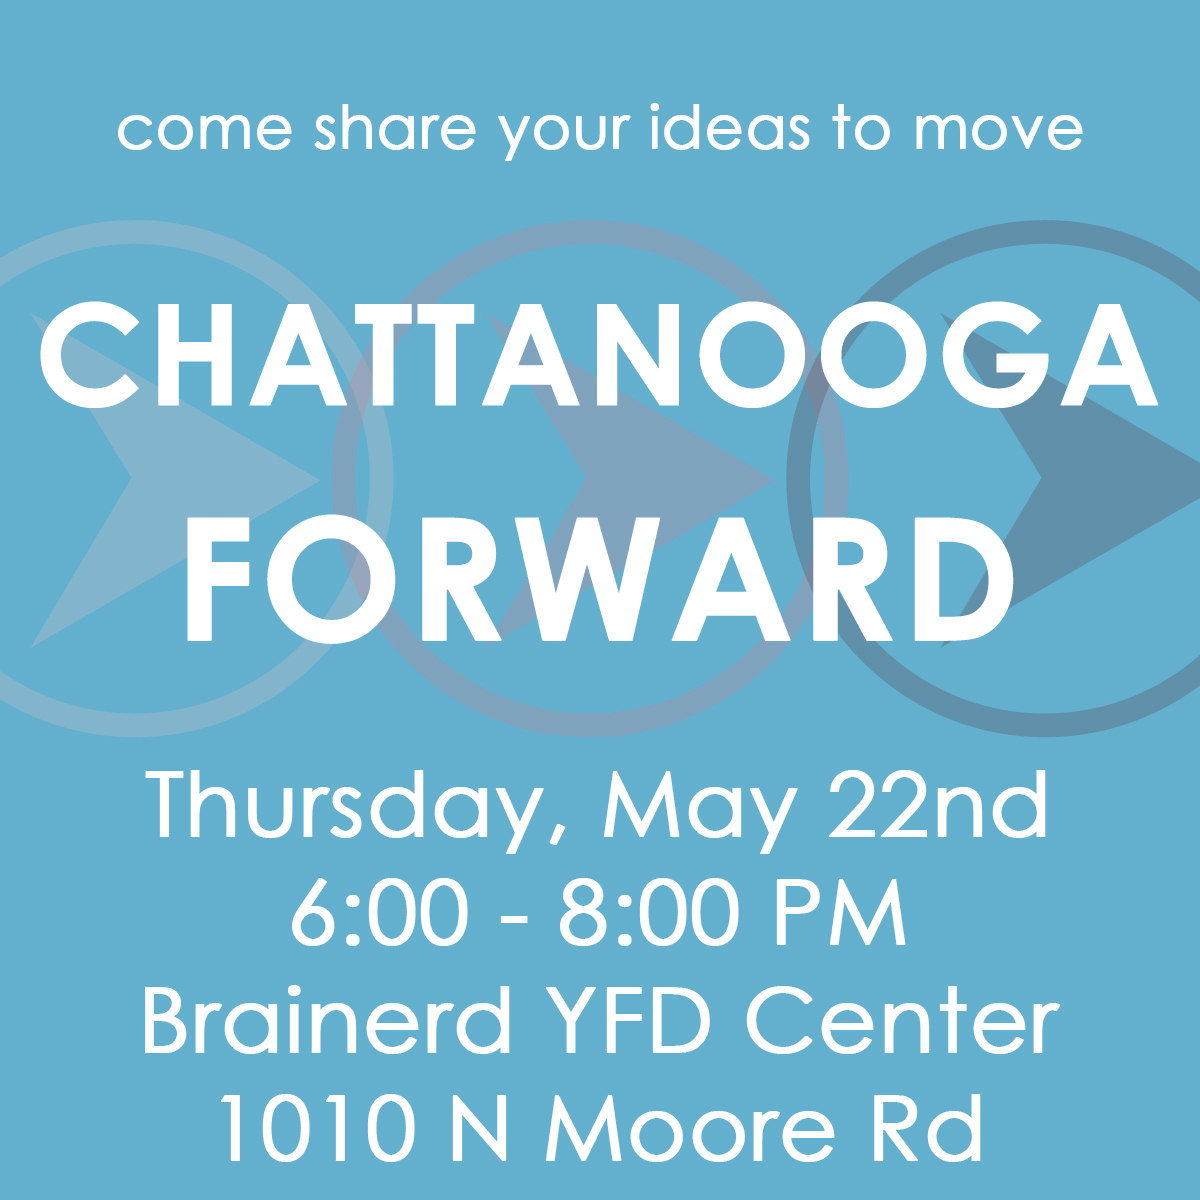 chattanoogaforwardfbshare2